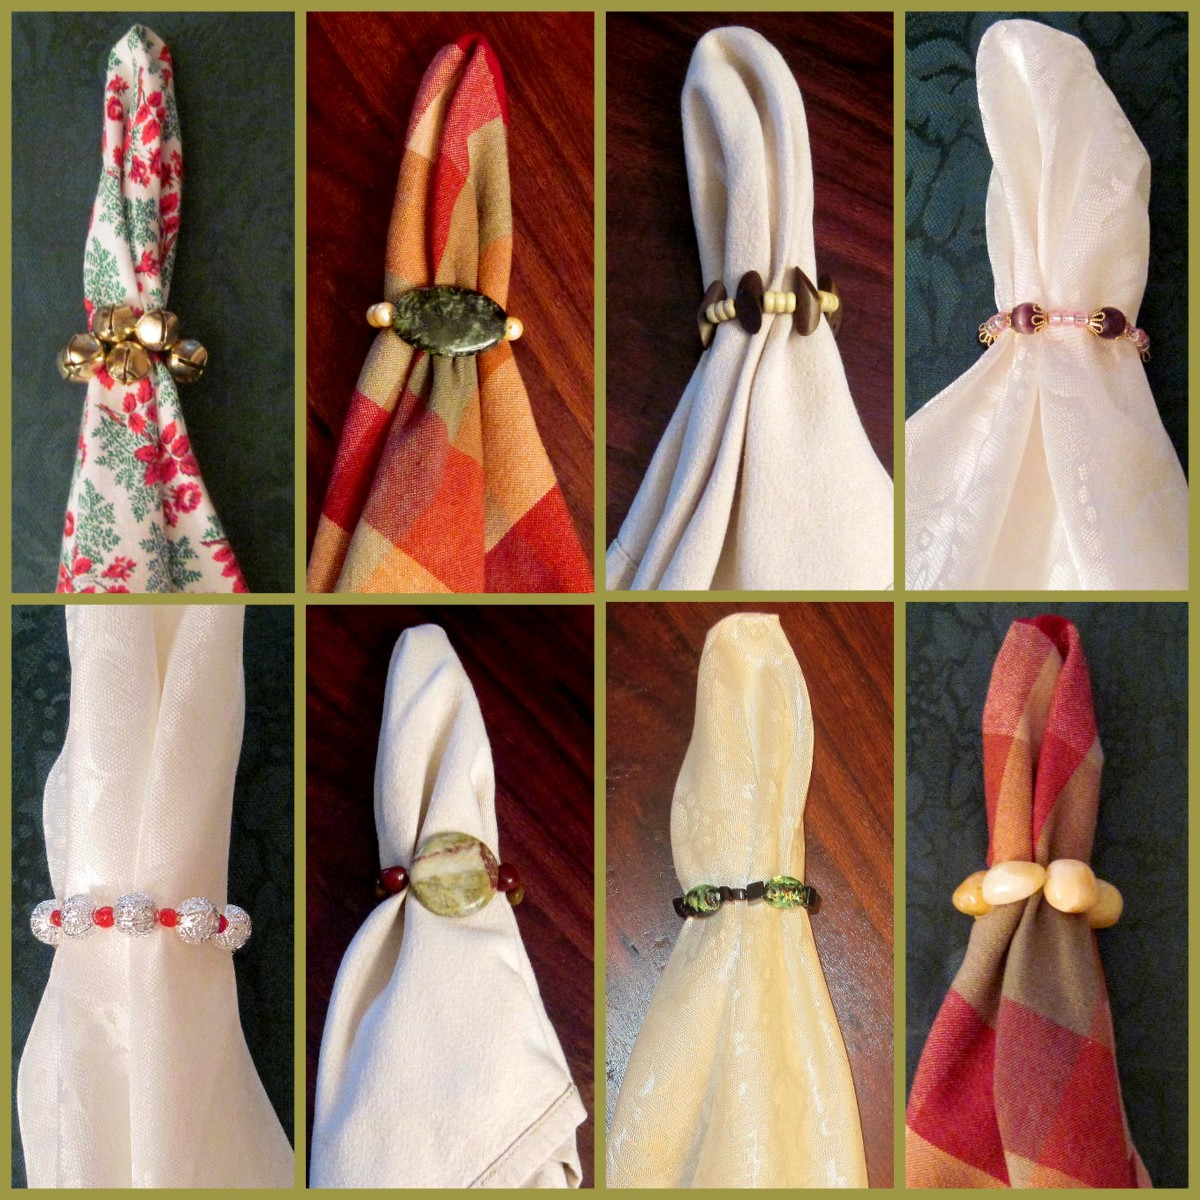 How to Make Napkin Rings: Step by Step Instructions